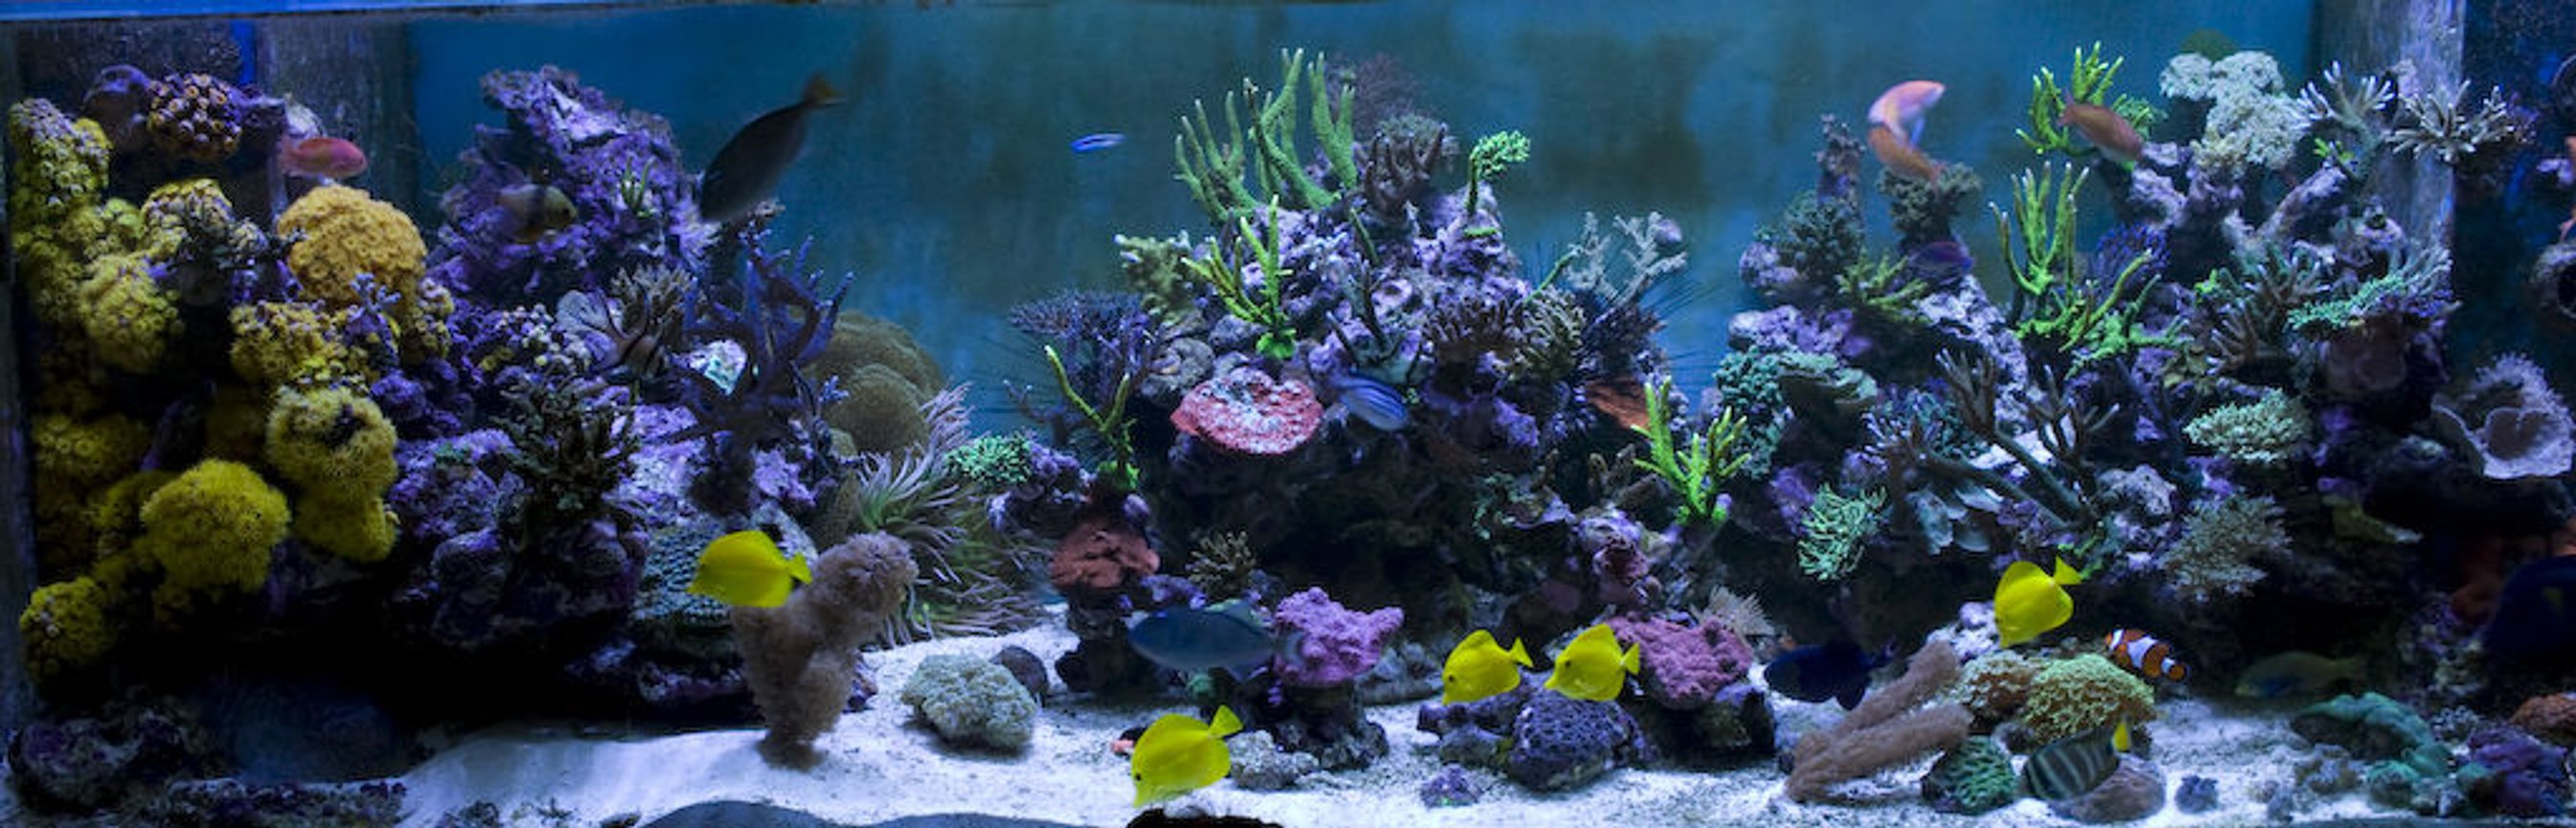 saltwater fish - zebrasoma flavescens - yellow tang - hawaii stocking in 400 gallons tank - 7.5 ft Long - 3 ft Wide - 2.5ft High 6 Ft Sump = 400 UK Gallons 8 Streams all hidden in Weirs GHL Profilux 4 * 400 Watt Halides with Coralview Electronic Ballasts and Luminarc 3 Reflectors. Currently using 20k Radium lamps Aquamedic 5000 Twin Skimmer Aquamedic Titan 2000 Chiller 2 * 150 gallon water change VATS